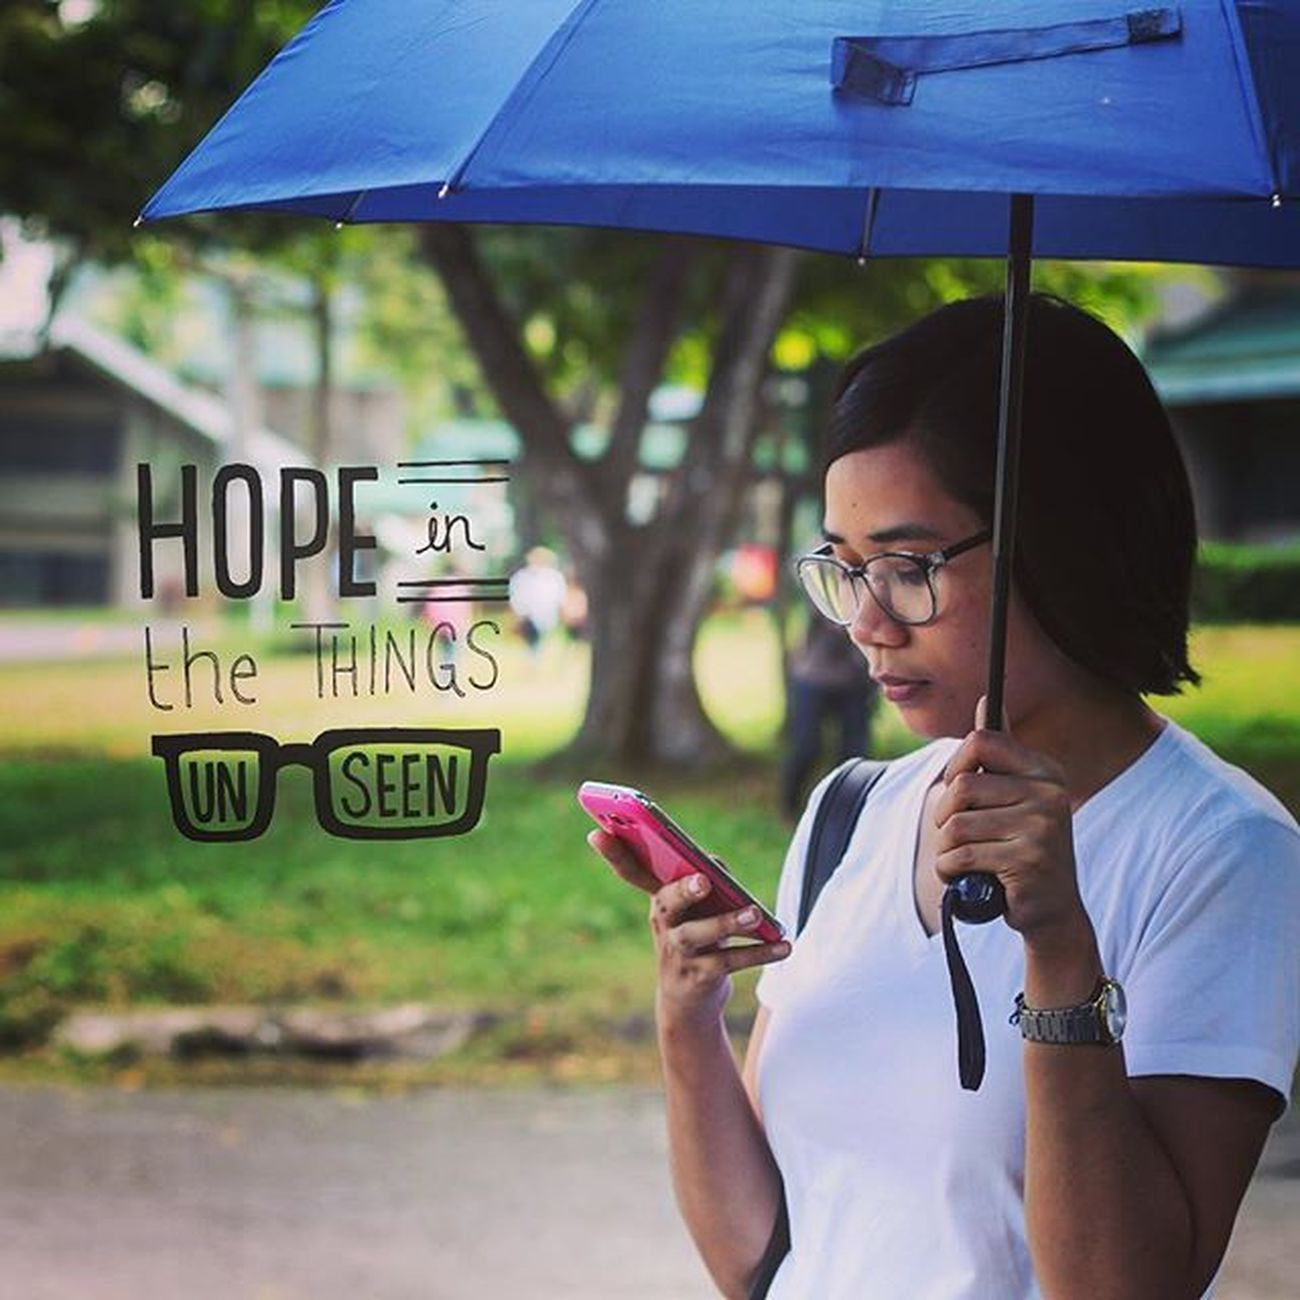 Audacious faith claims the promise of God despite overwhelming difficulties in life. @kimeefernandez Over Overapp Philippines UPLB TeamJesus Losbanos Explore Travelgram Traveldiary Travelprocinema Instantanalog Travel Mytravelgram ASIA SEAsia Umbrella Texting Danielwellington Whiteshirt  Faithtoclaim Daretobelieve